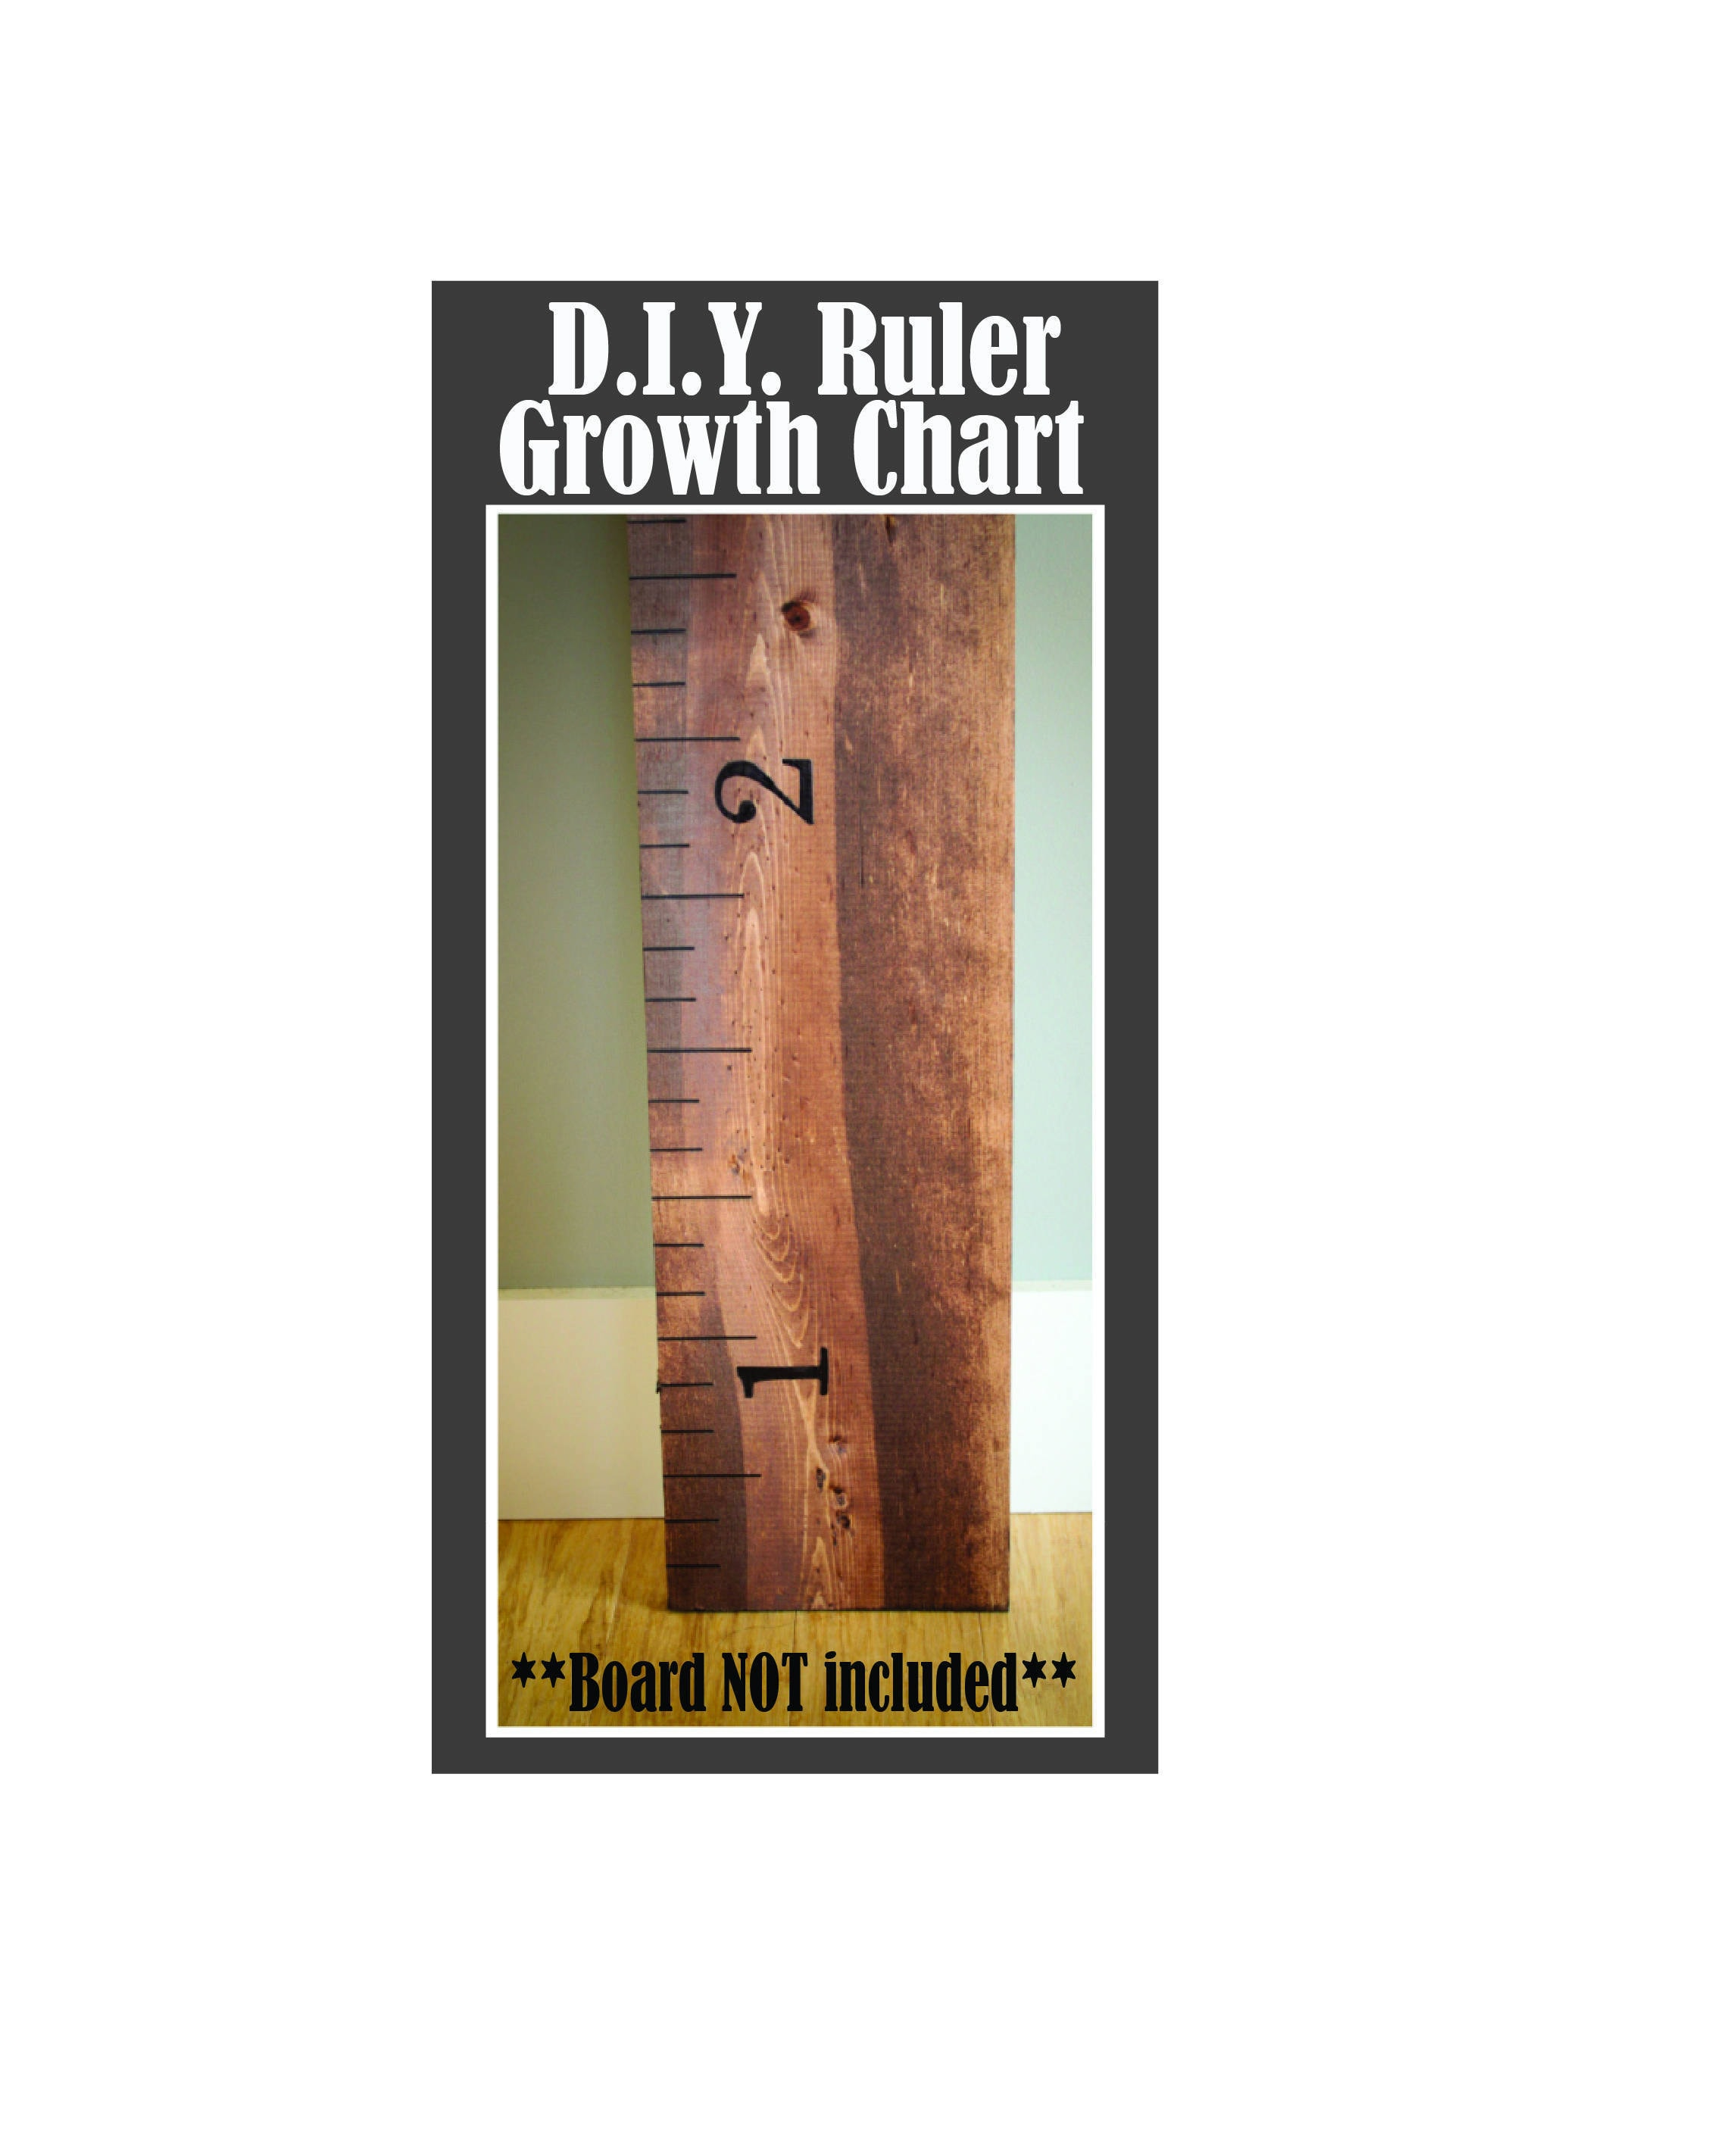 Diy growth chart ruler board not included ruler growth chart diy growth chart ruler board not included ruler growth chart kit childrens growth chart growth chart vinyl vinyl decal ruler decal nvjuhfo Gallery